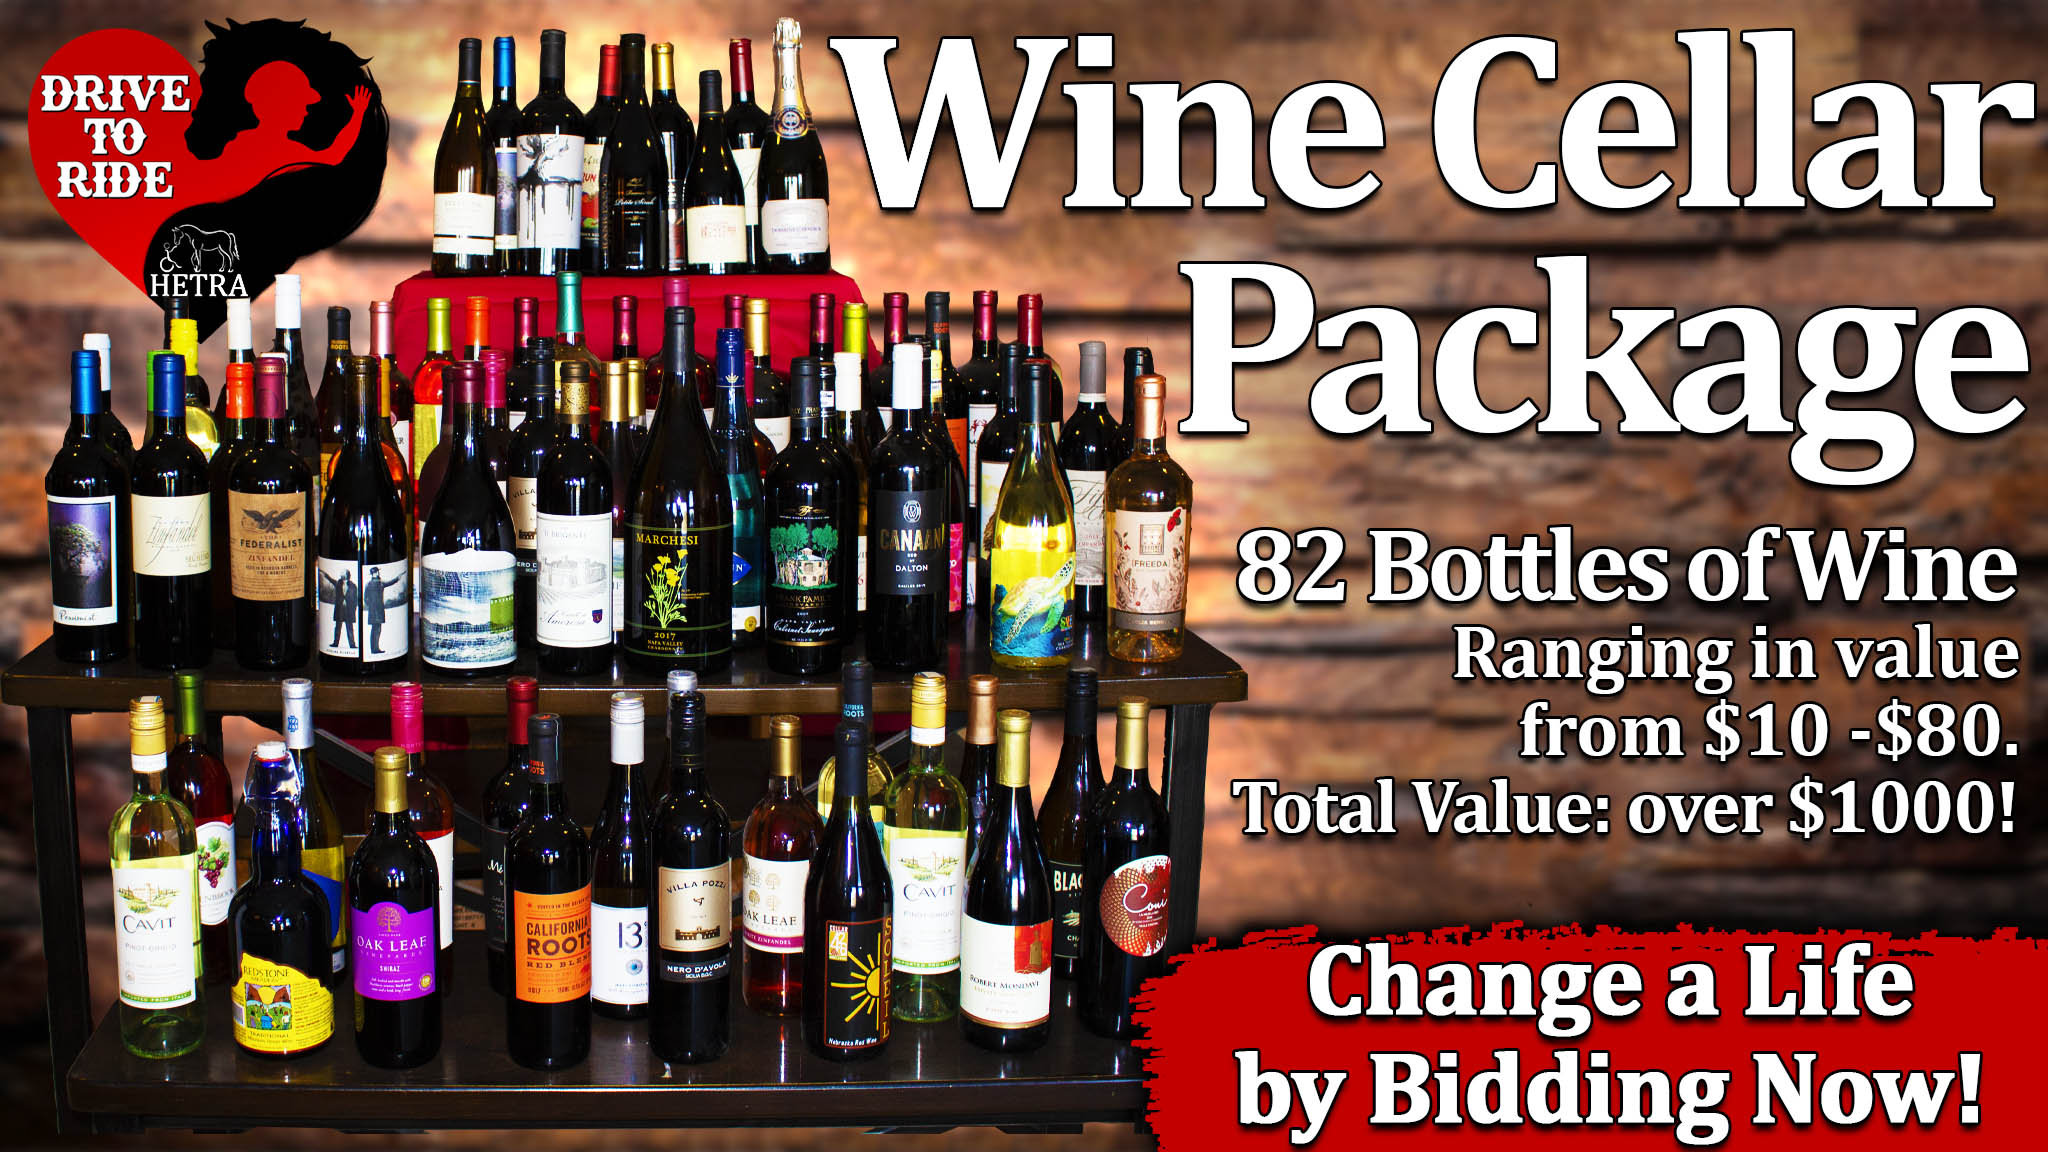 The Wine Cellar Package